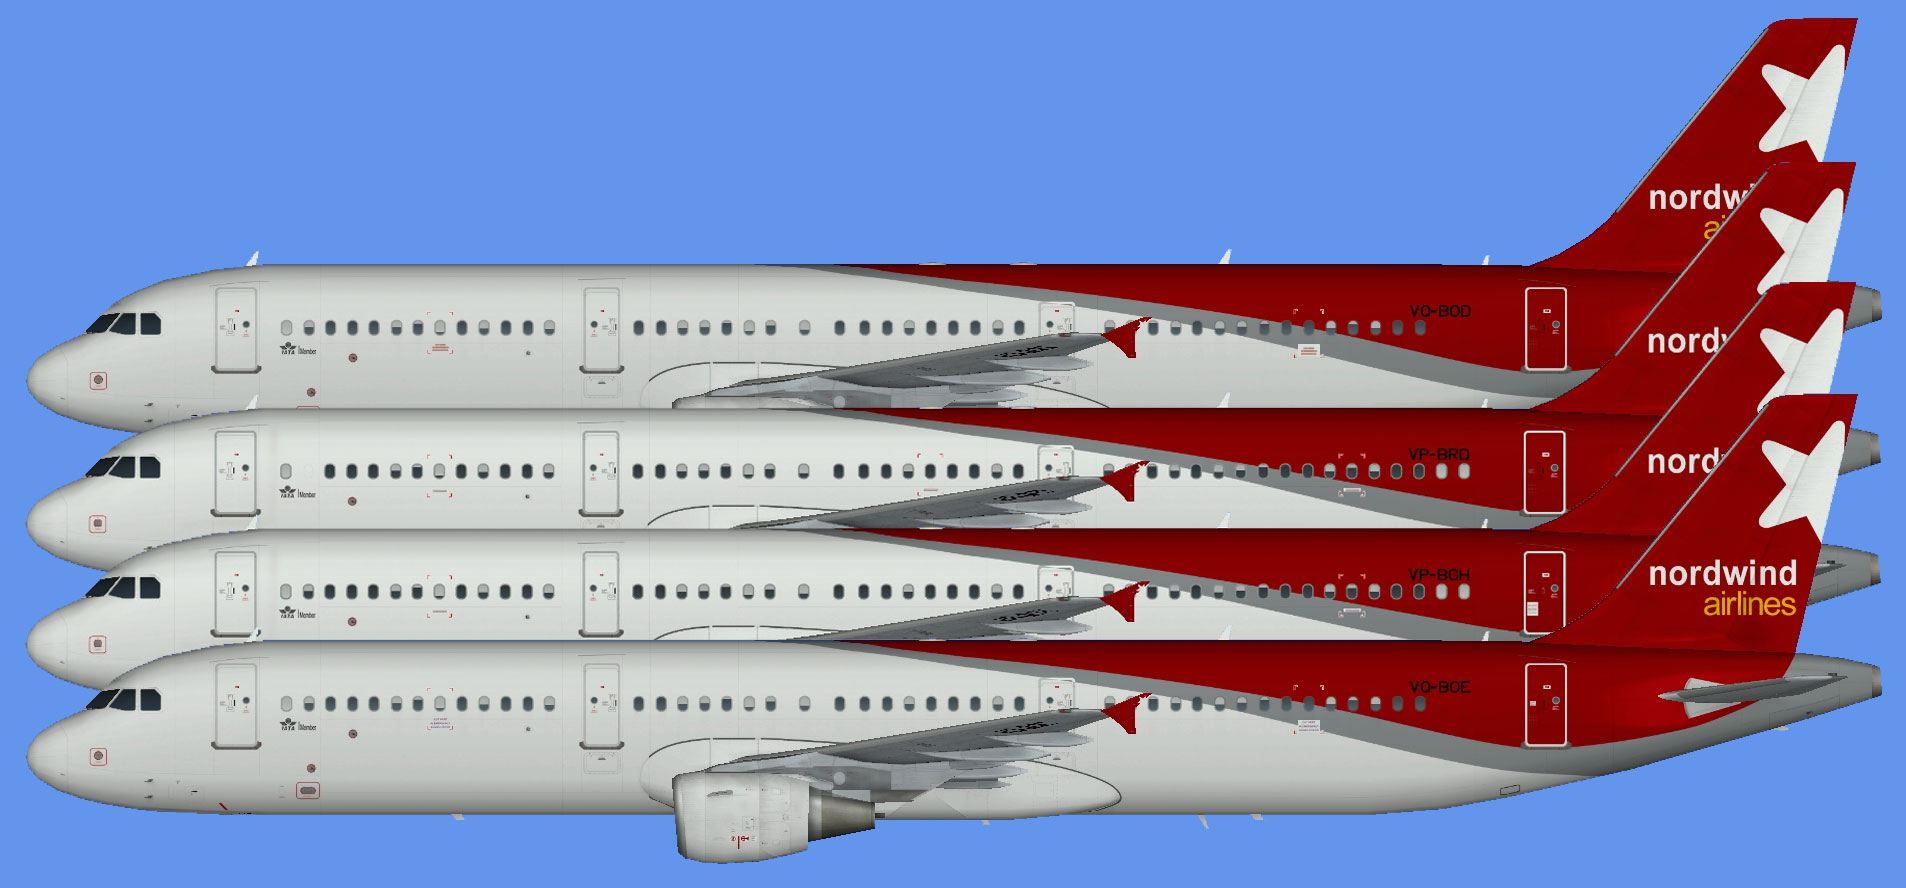 Nordwind Airlines Airbus A321 OC